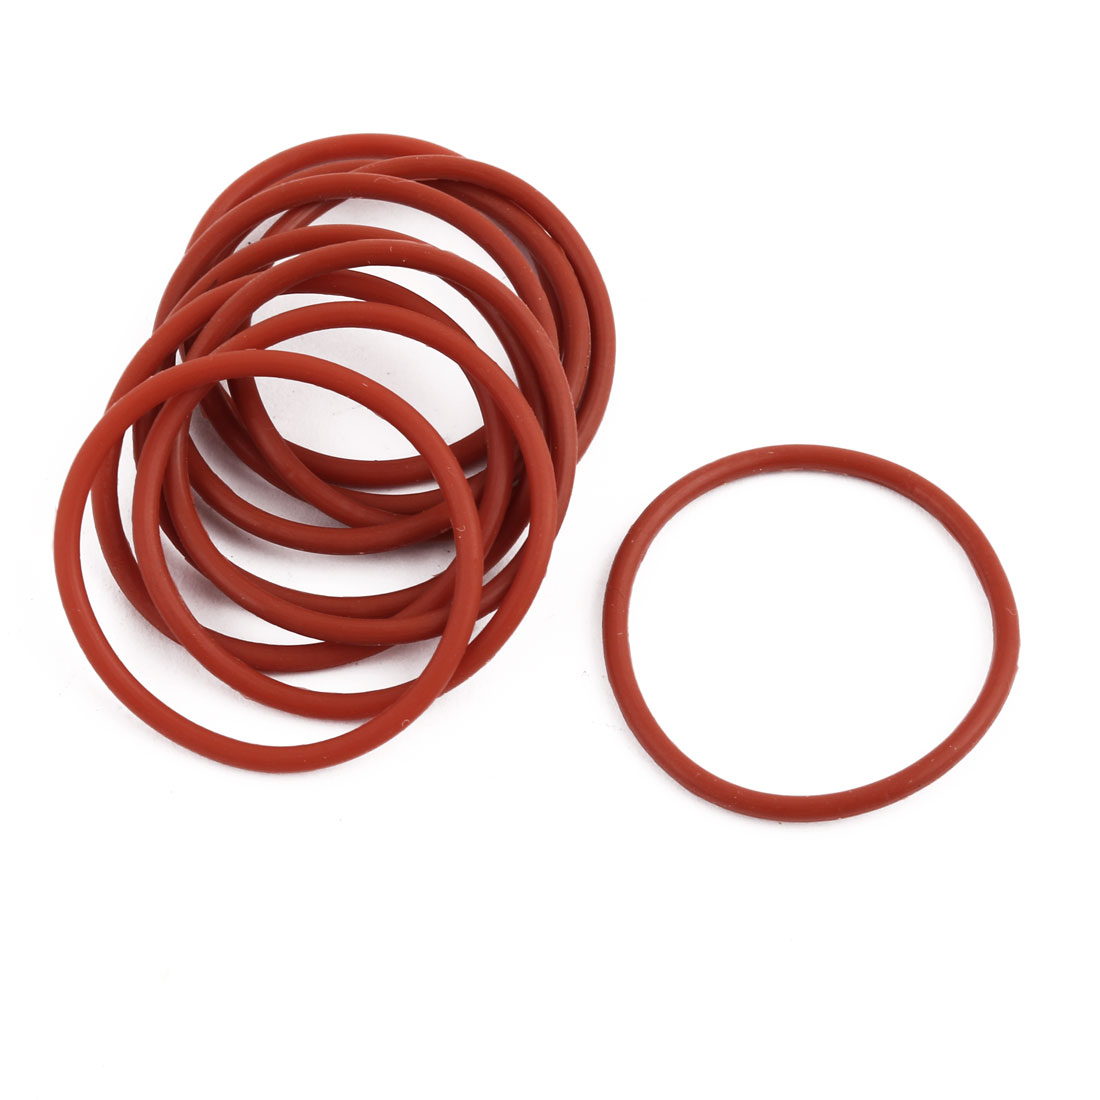 10pcs Red Round Nitrile Butadiene Rubber NBR O-Ring 31mm OD 1.9mm Width